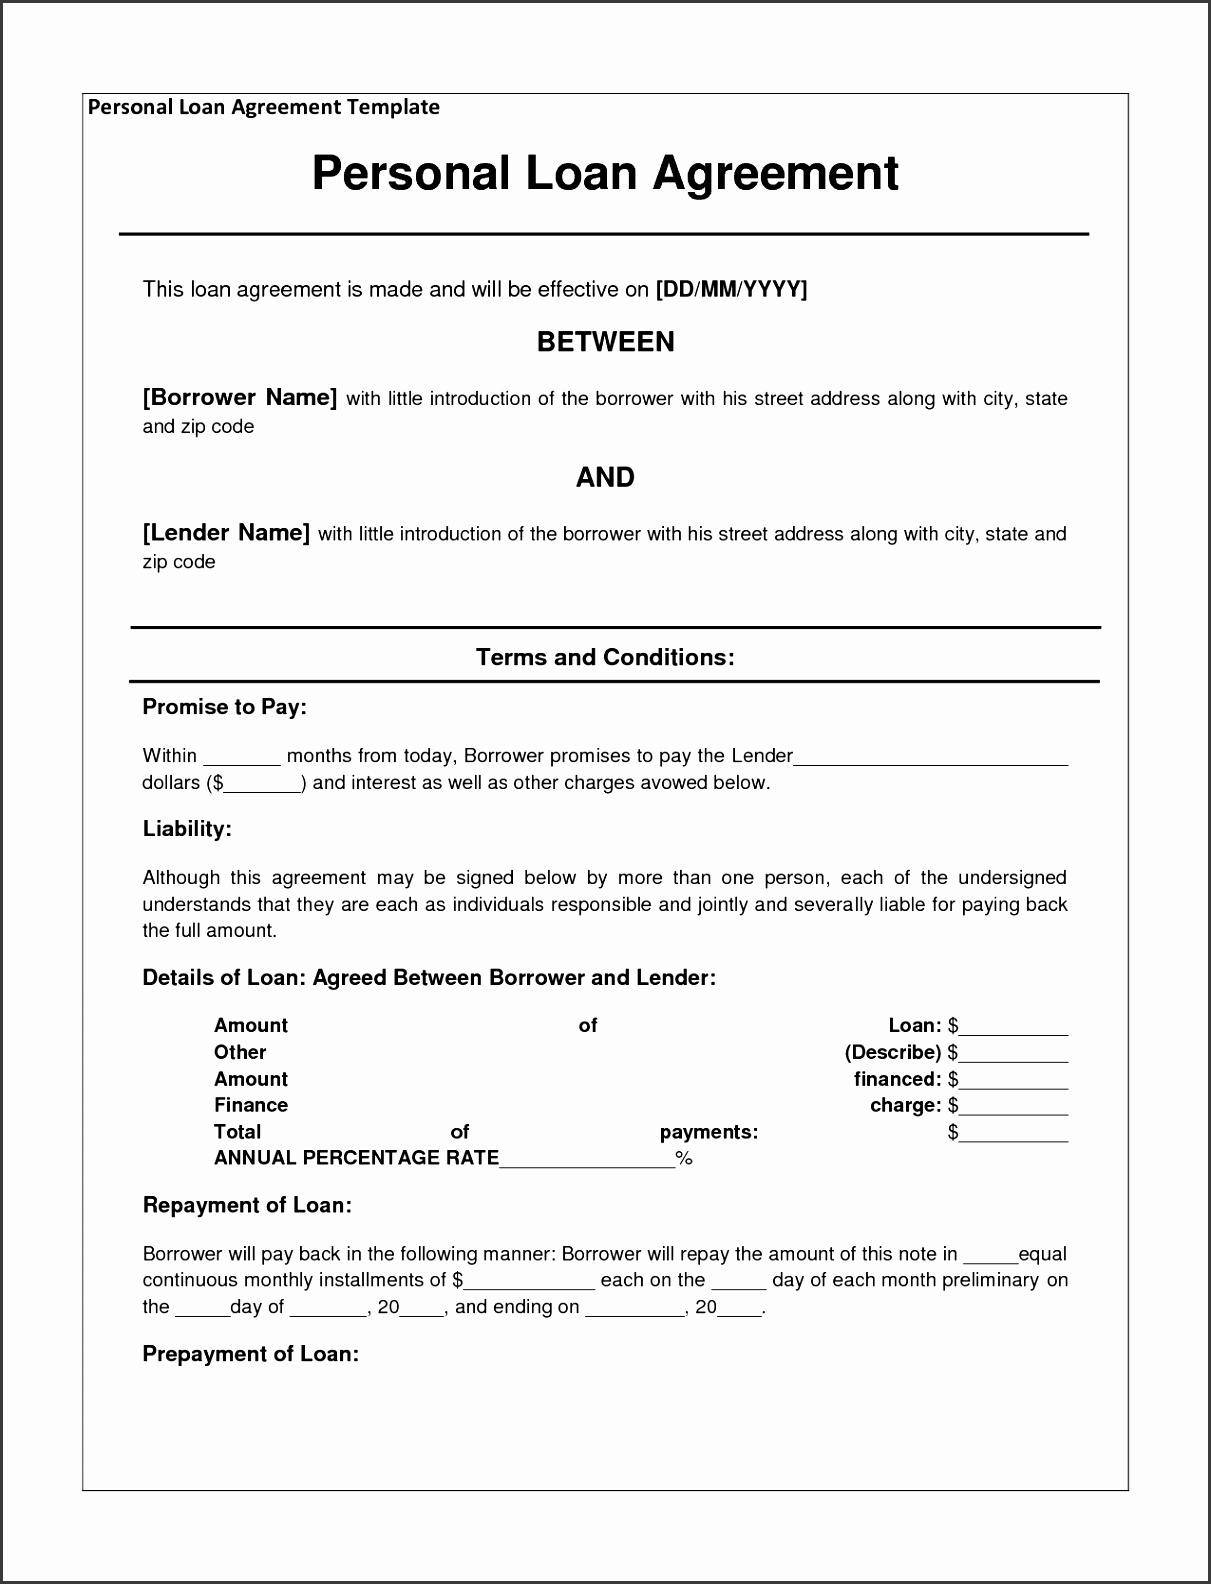 Loan Agreement Free Template tario Secured Promissory Note Payment For Between Friends 1280